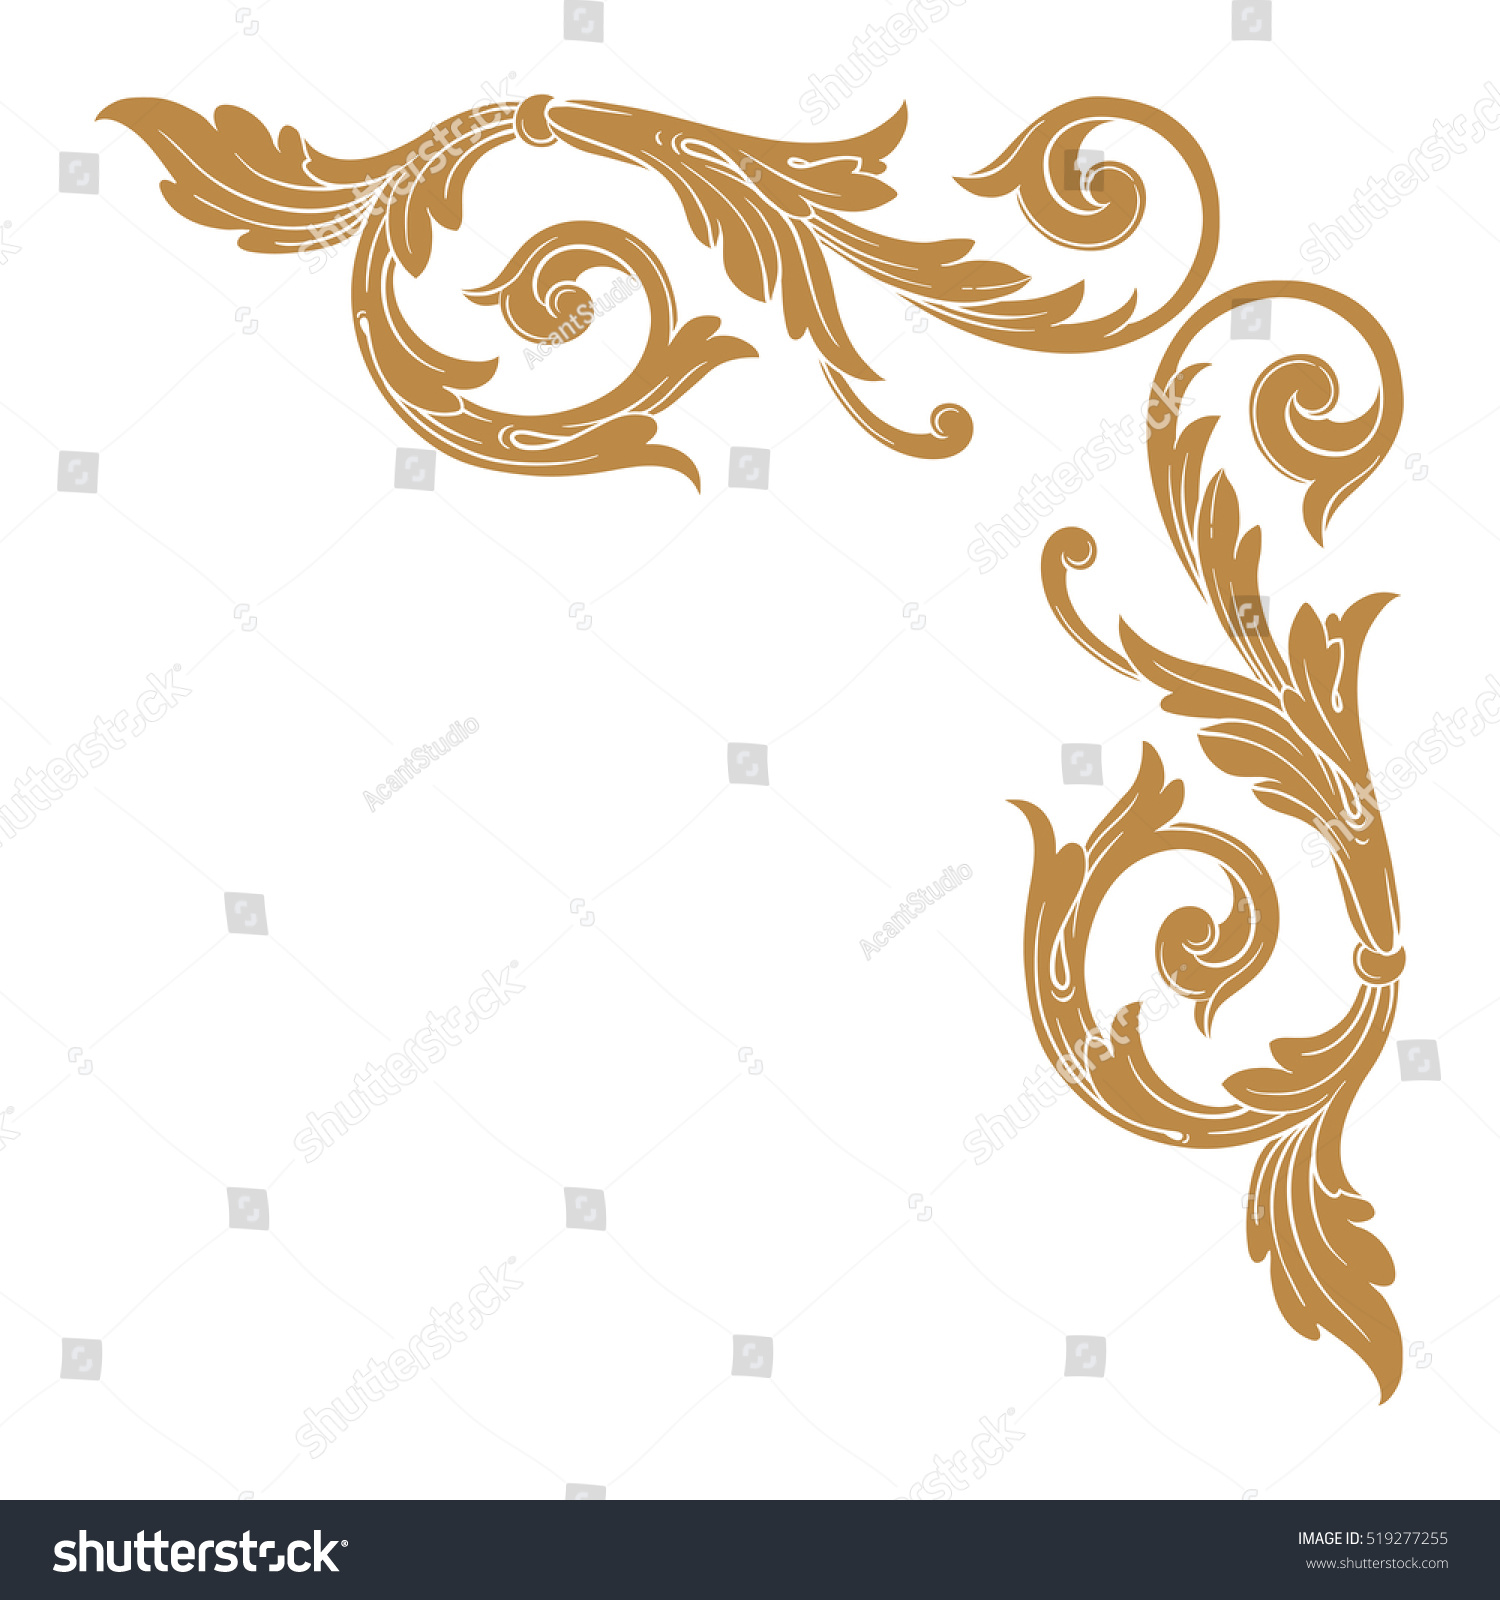 I Designed A Vintage Looking Border Art For You To Use In: Gold Vintage Baroque Corner Ornament Retro Stock Vector